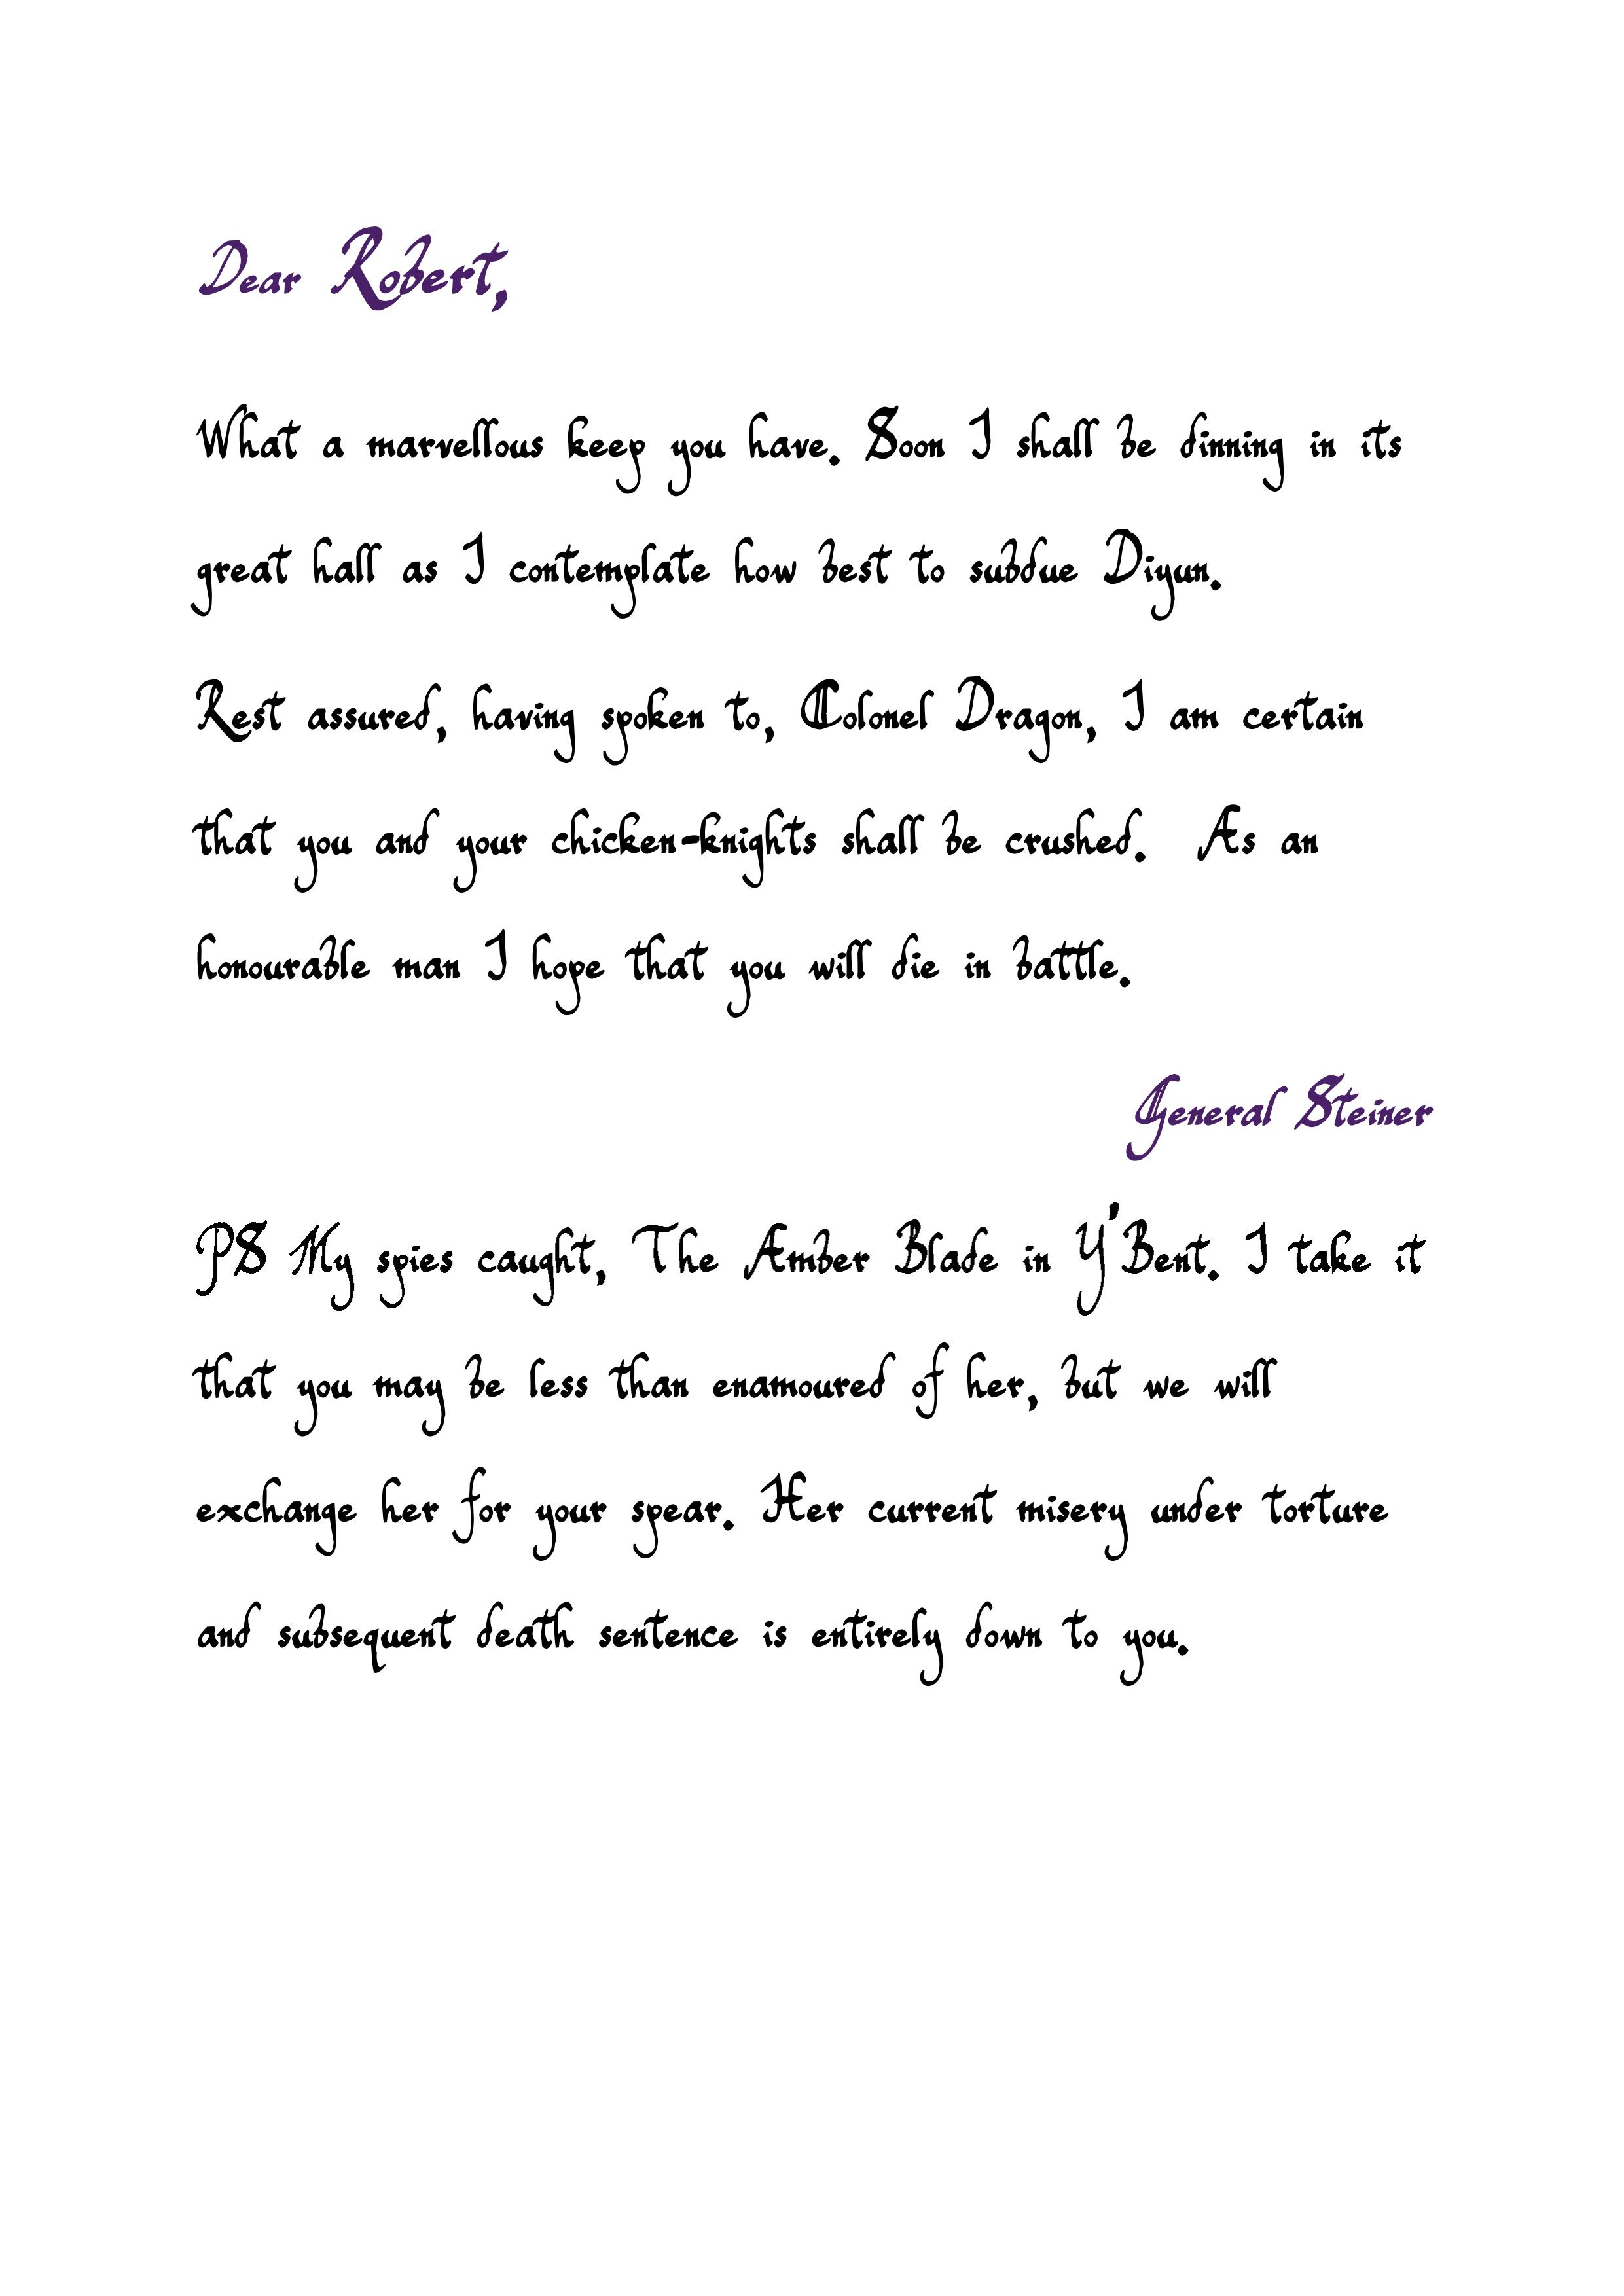 letters_from_steiner_04.jpg